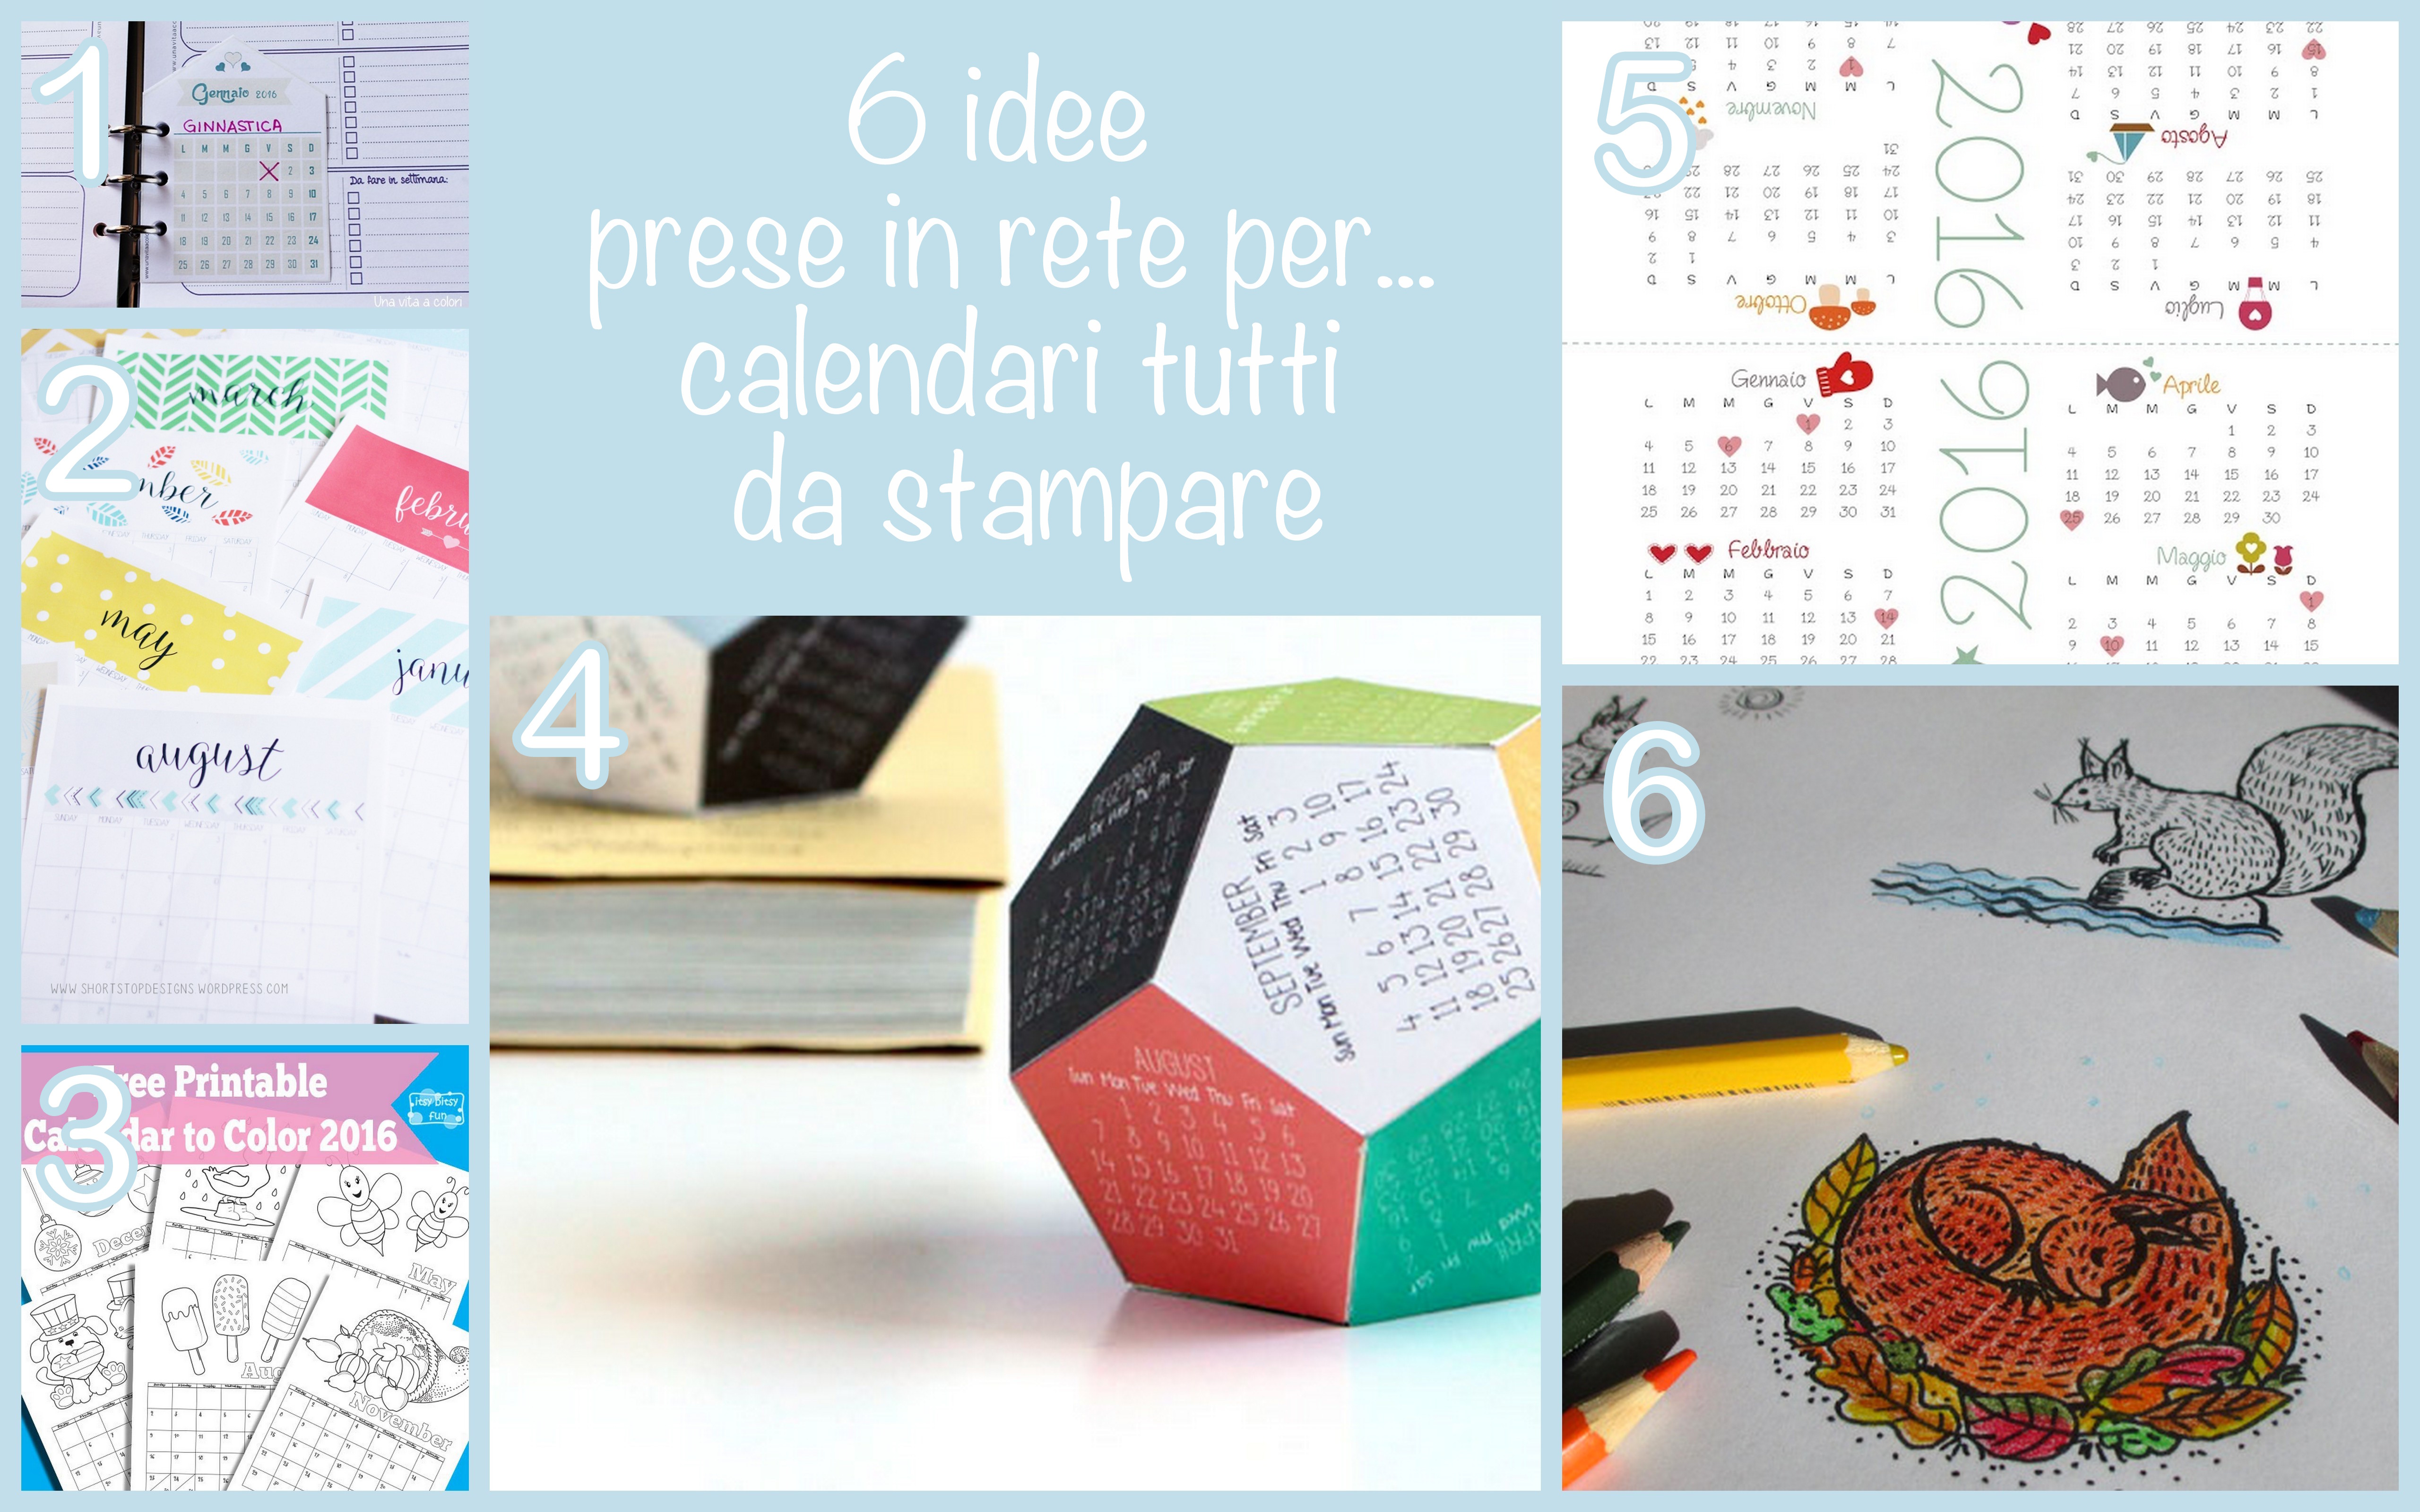 Calendario Anno 2016 Da Stampare.Calendario Fai Da Te